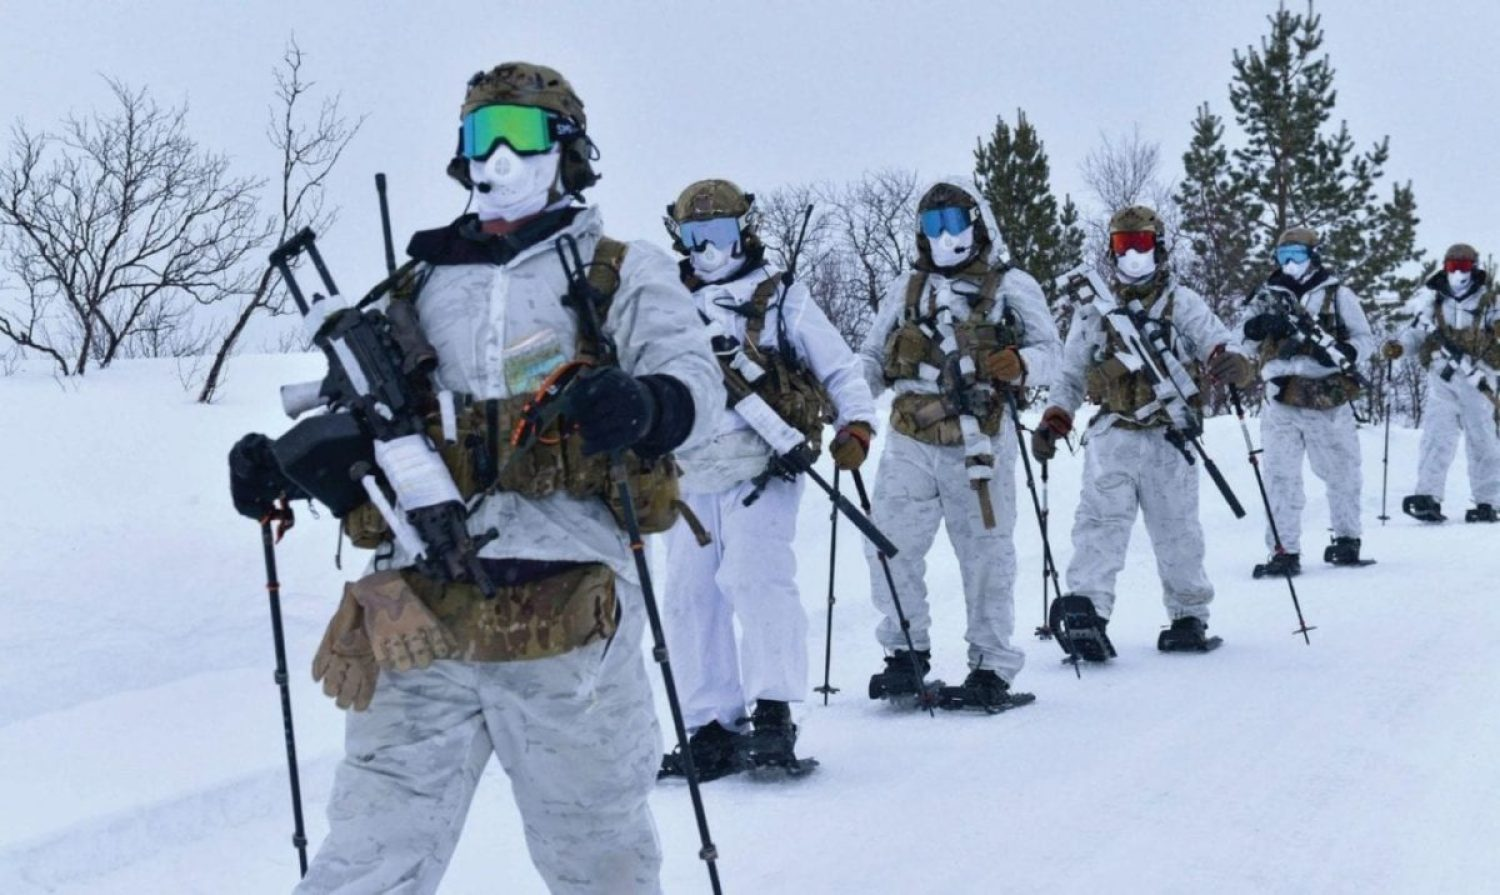 U.S. Air Force Special Tactics operators